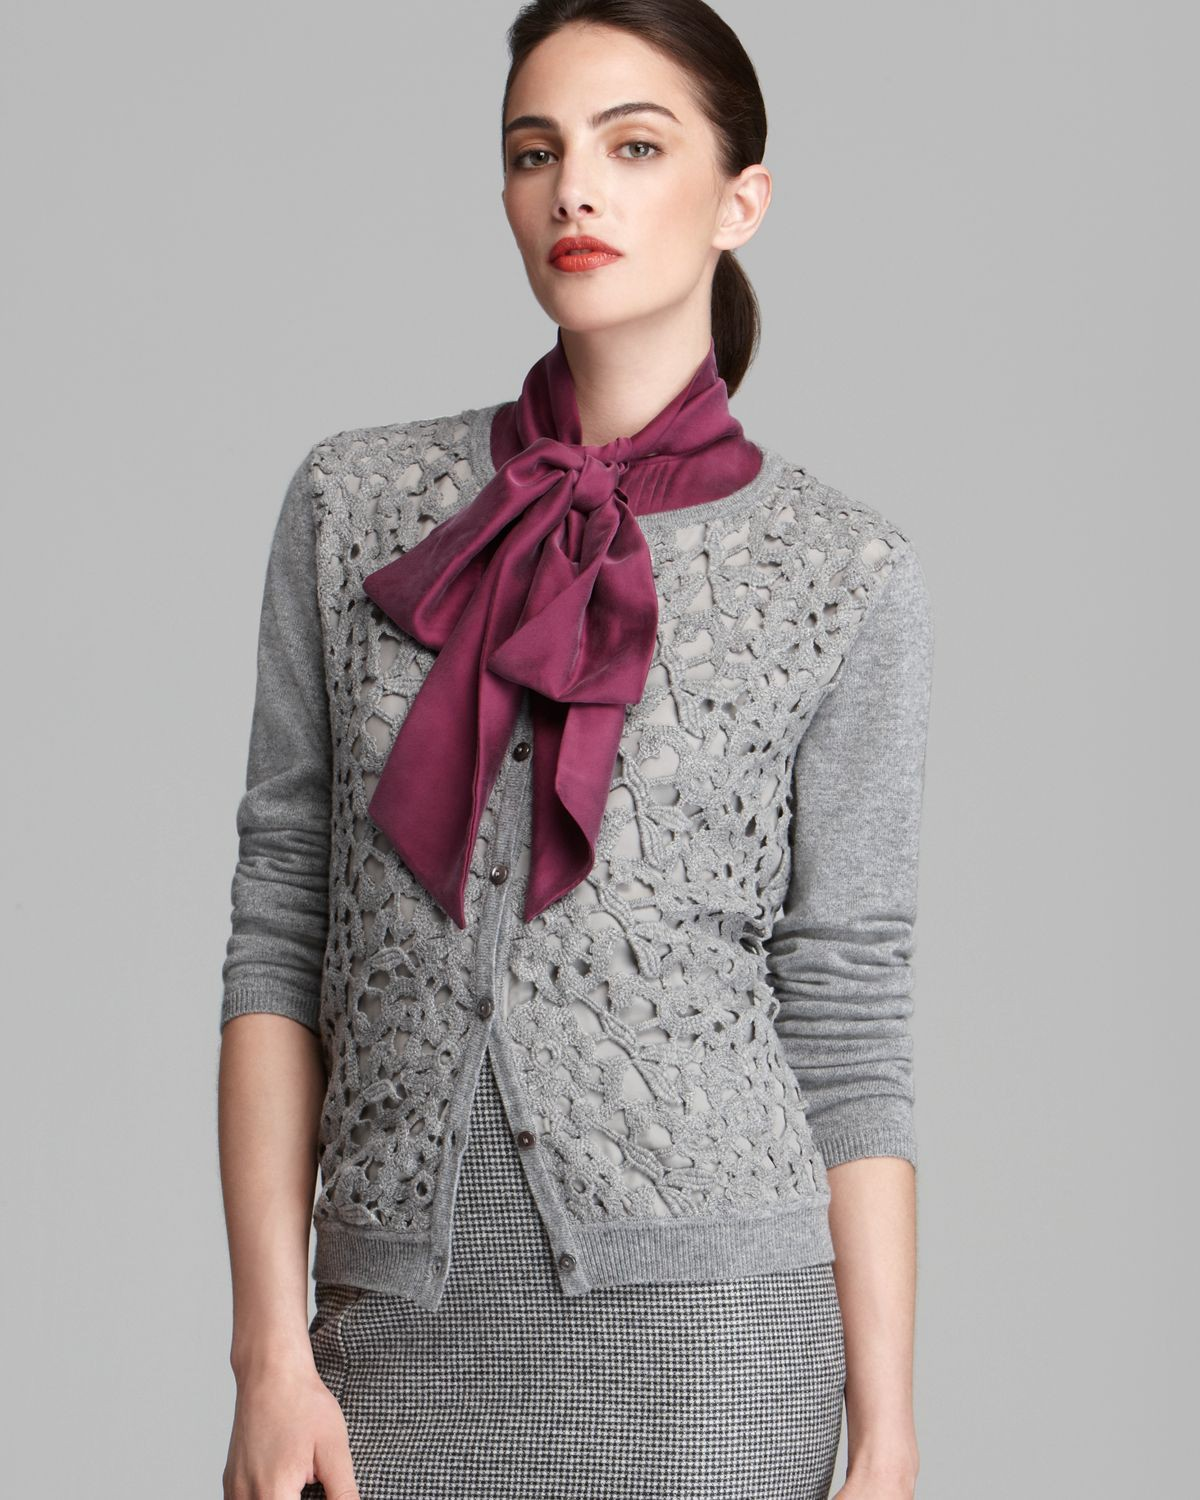 Most liked ideas for fashion model, Formal wear